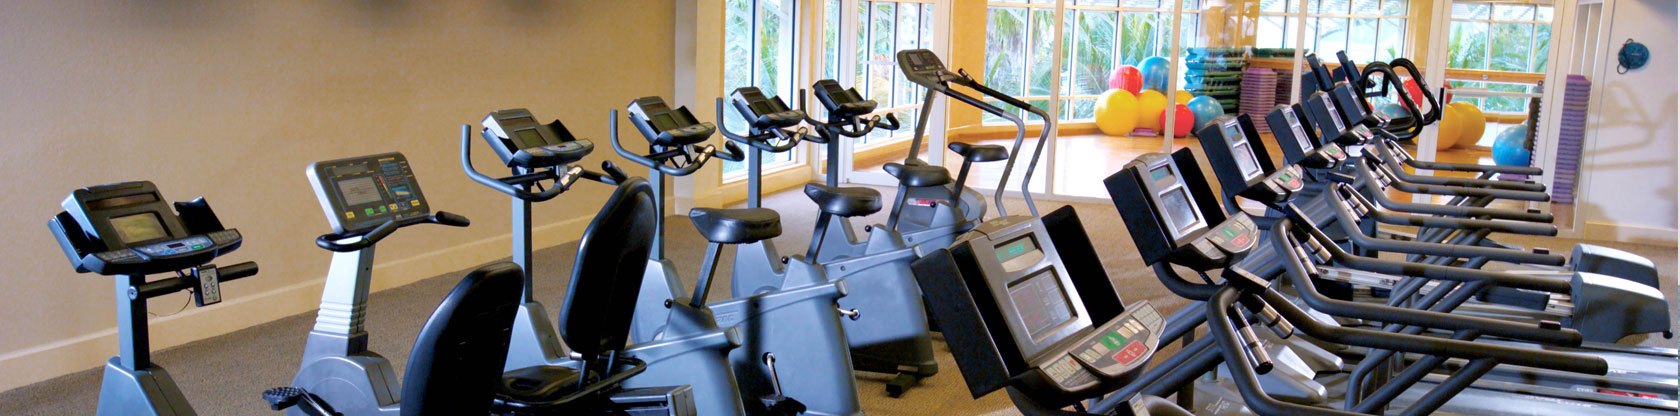 Grand-Lucayan-Bahamas-All-Inclusive-Fitness-Center.jpg